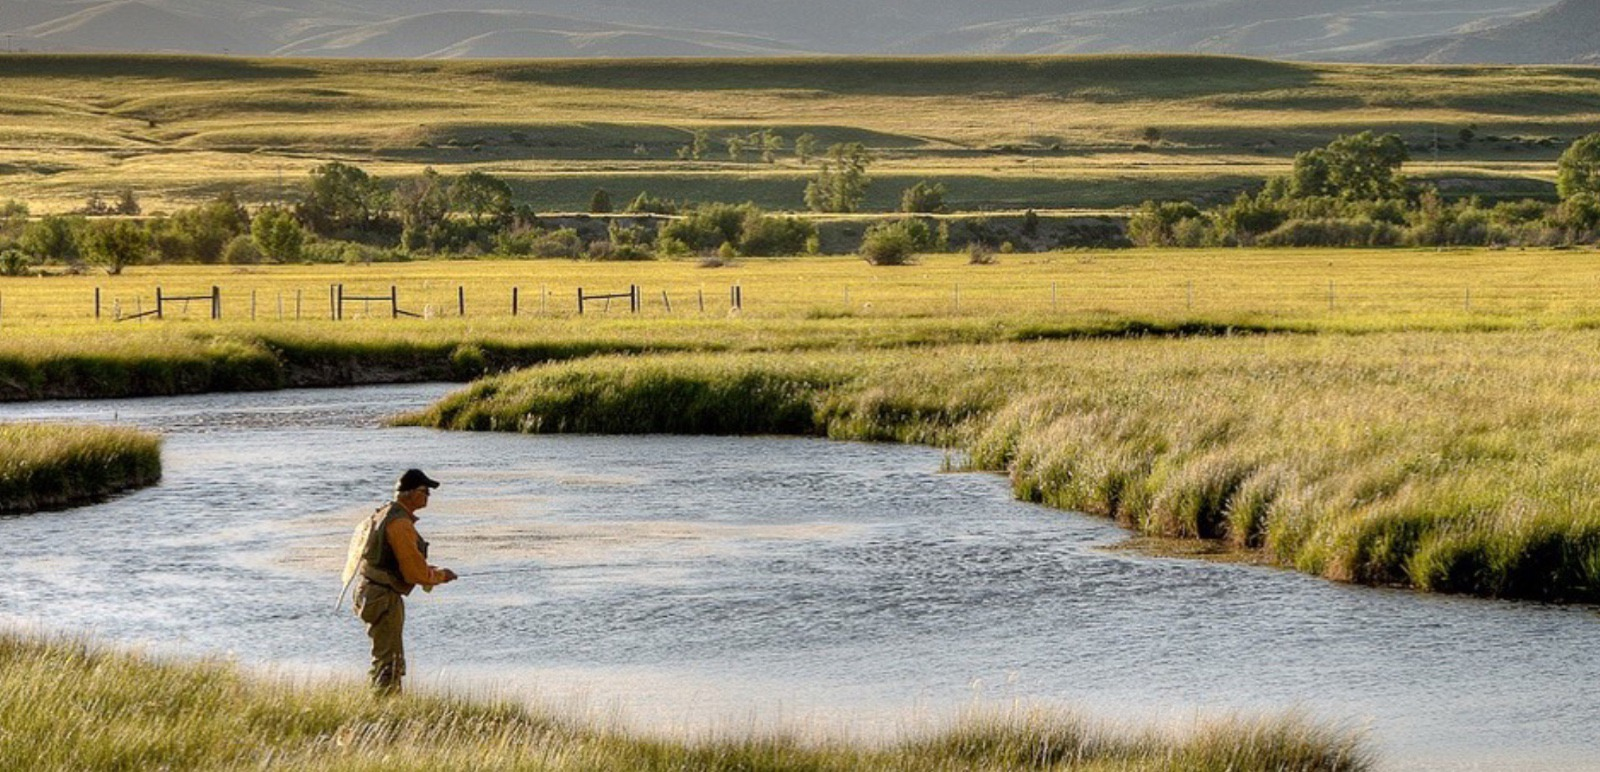 O'Dell Creek in the Madison Valley, photo courtesy River Design Group (www.riverdesigngroup.com)